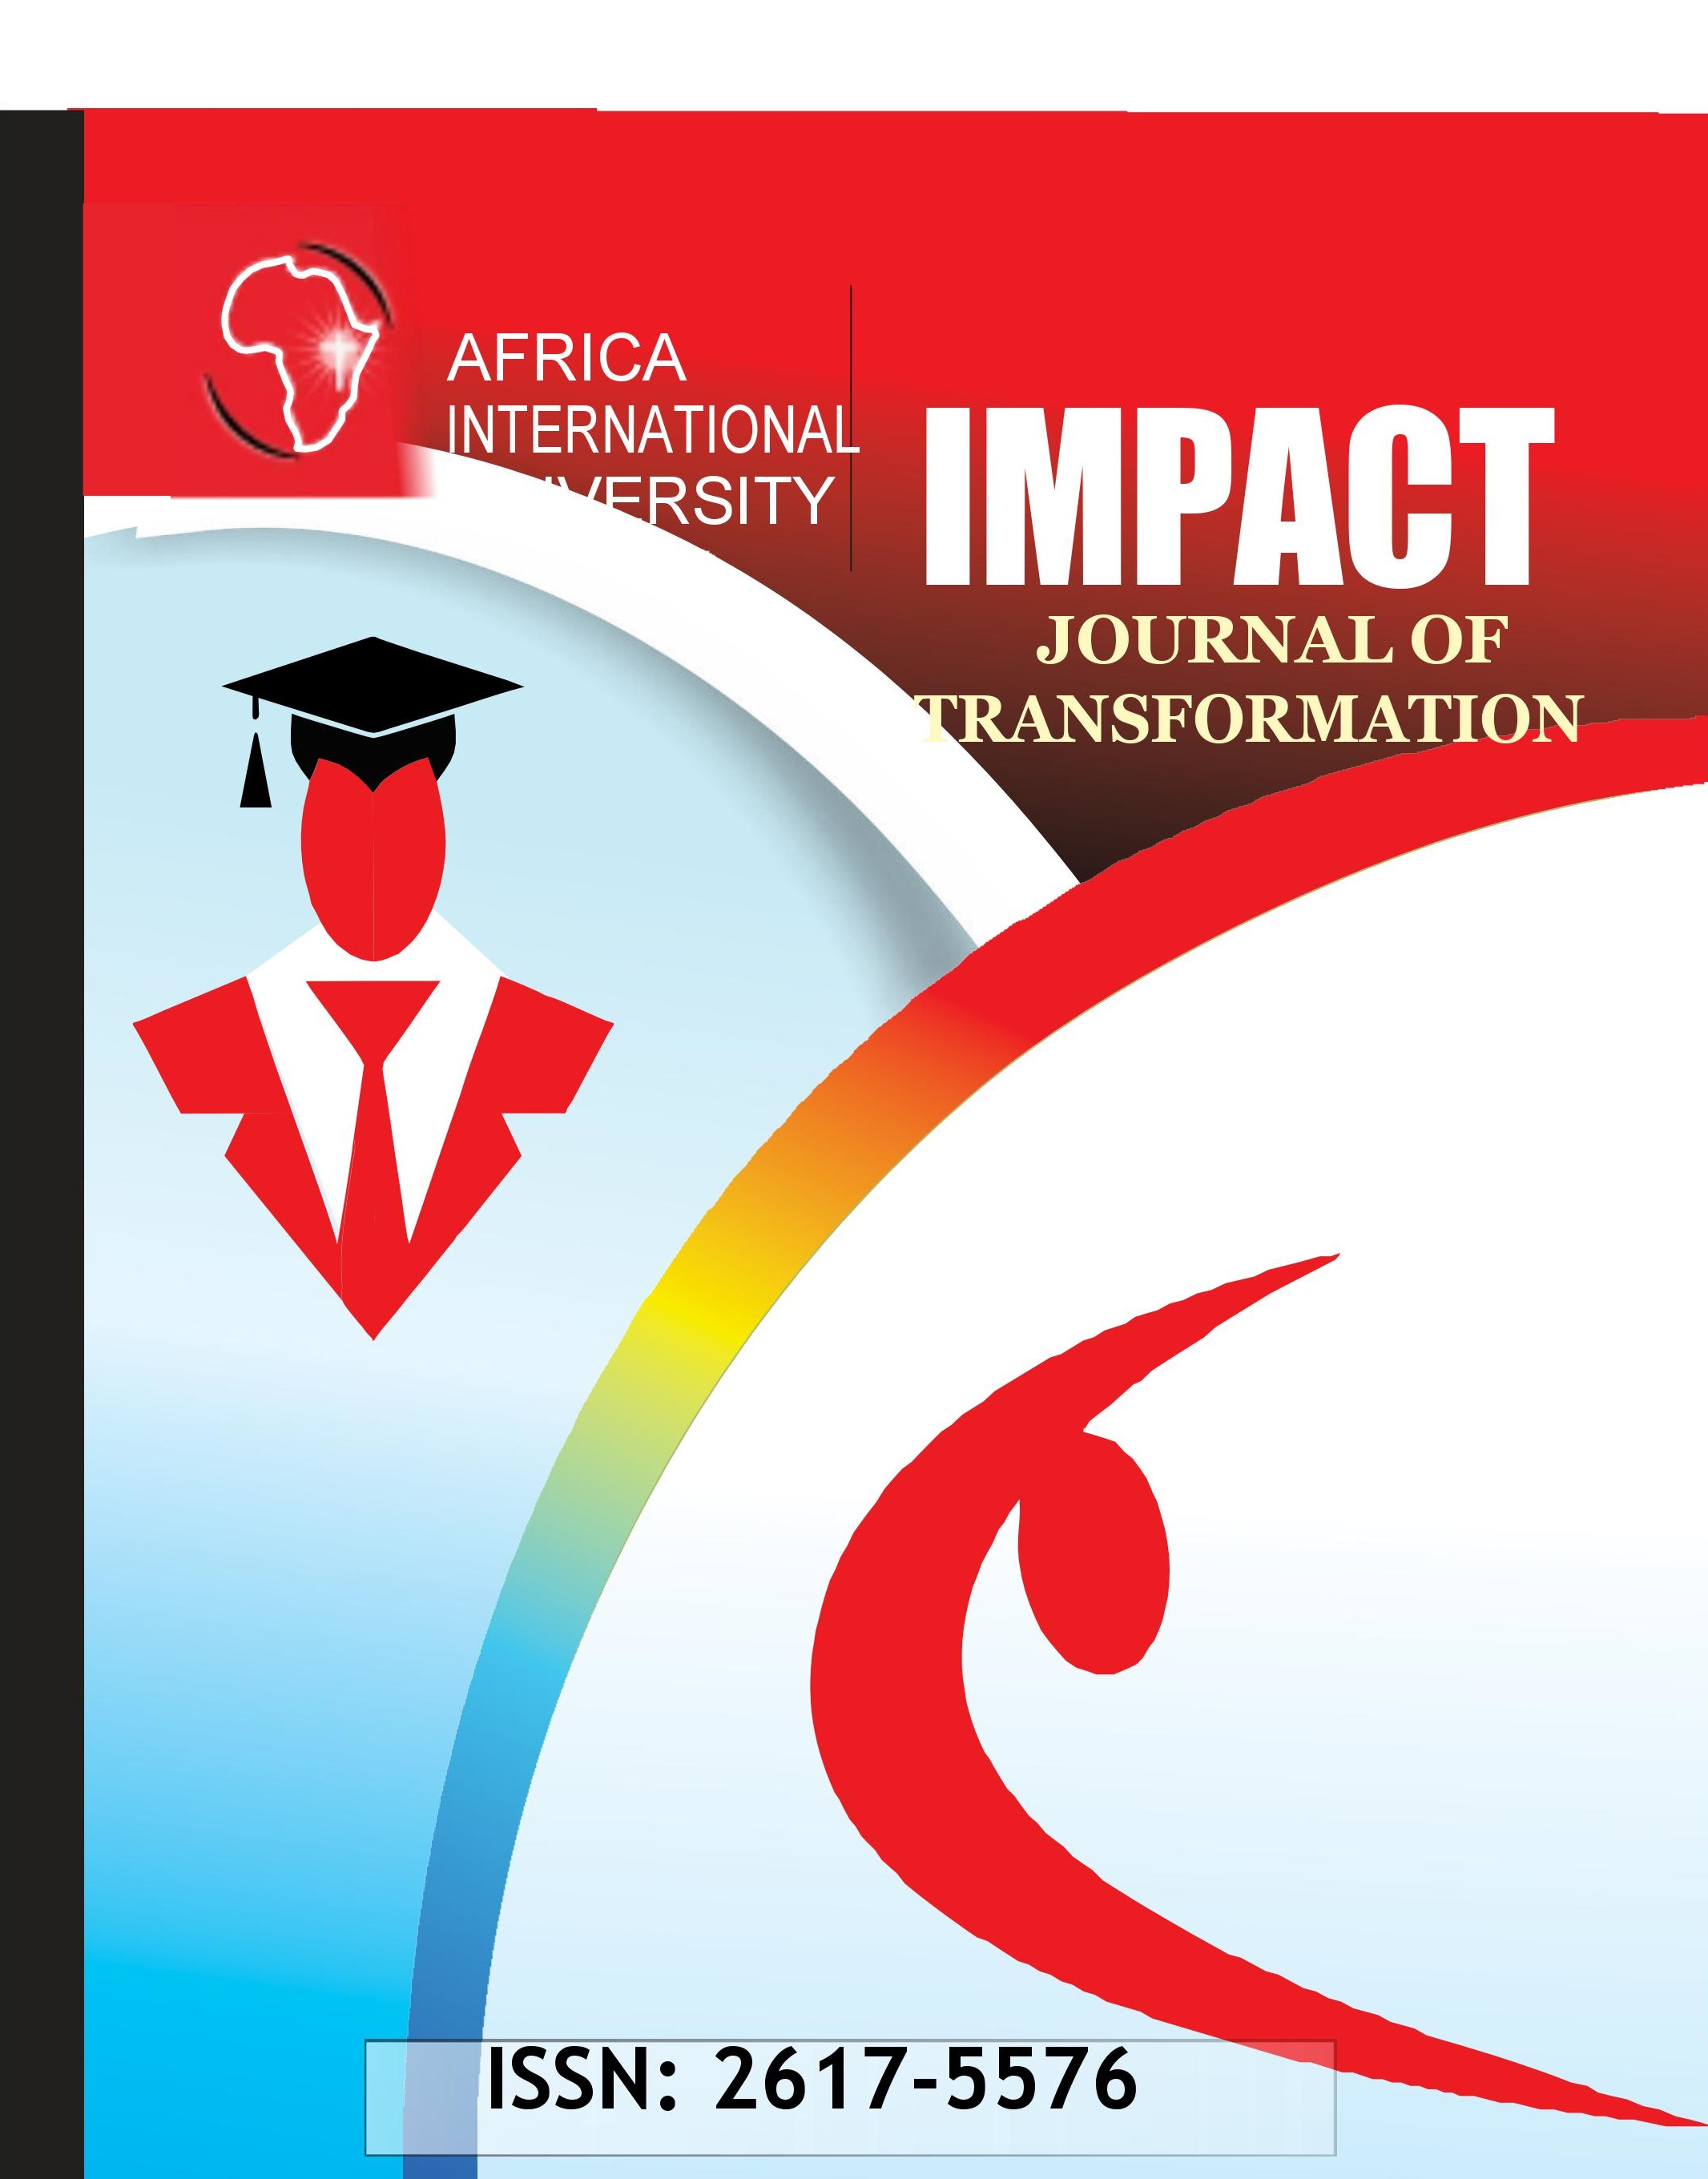 View Vol. 3 No. 2 (2020): Impact: Journal of Transformation